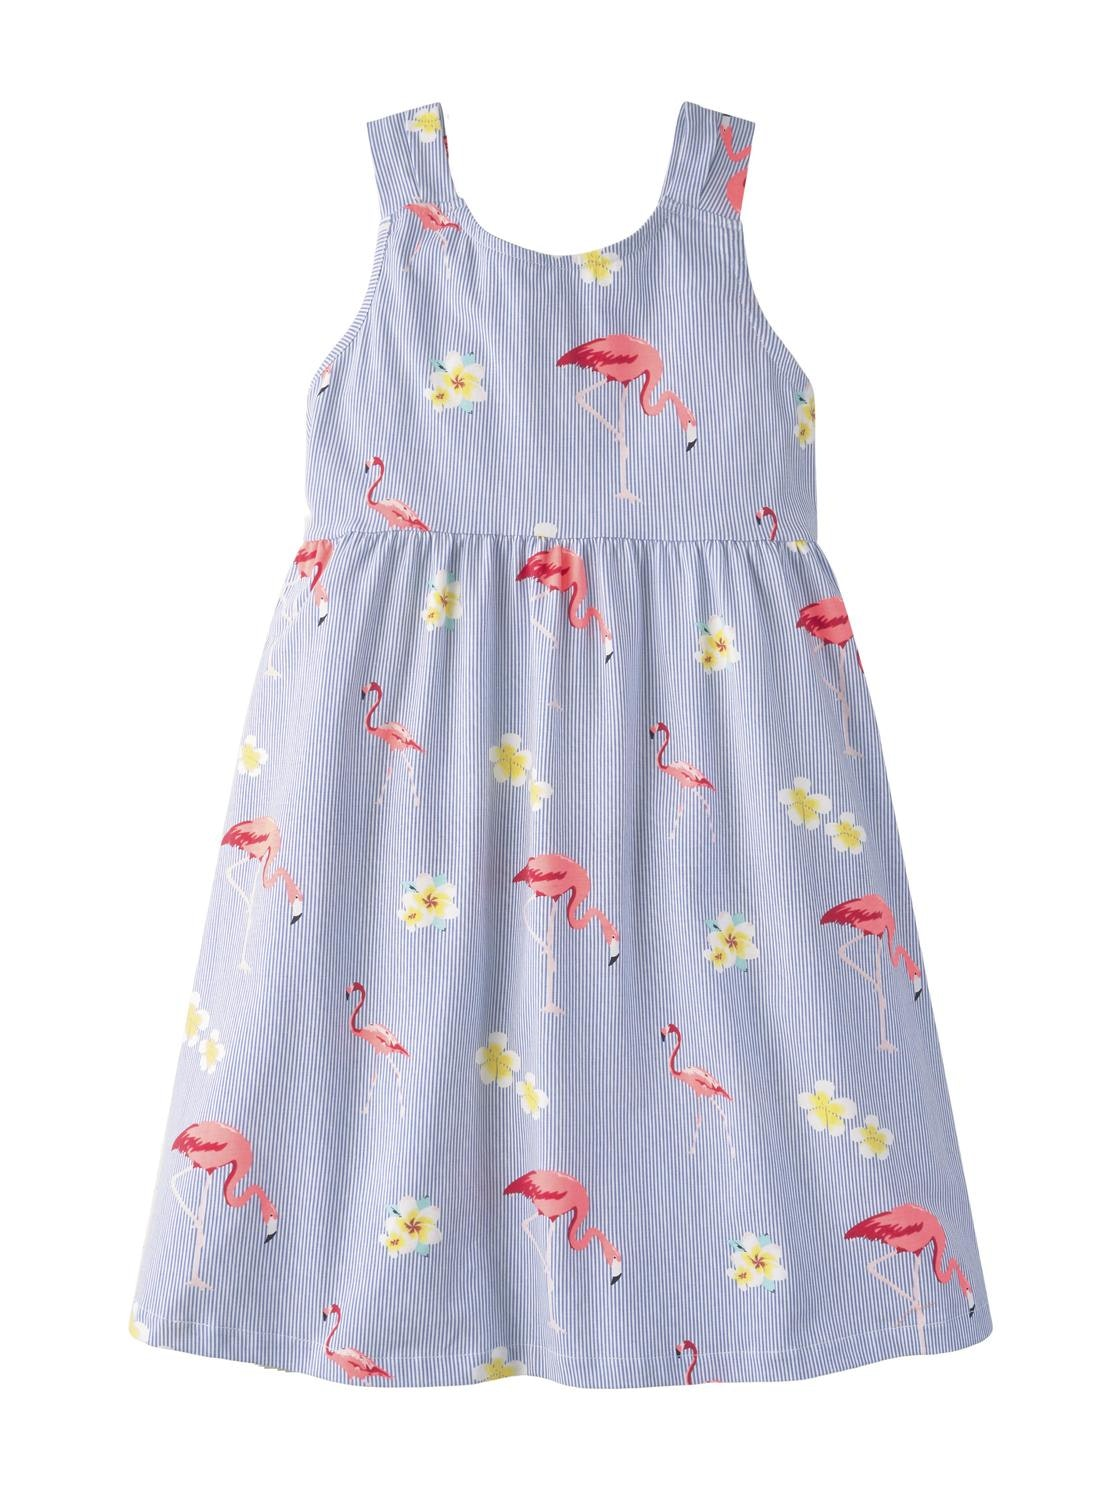 dress patterned, printed stripe-multicolored